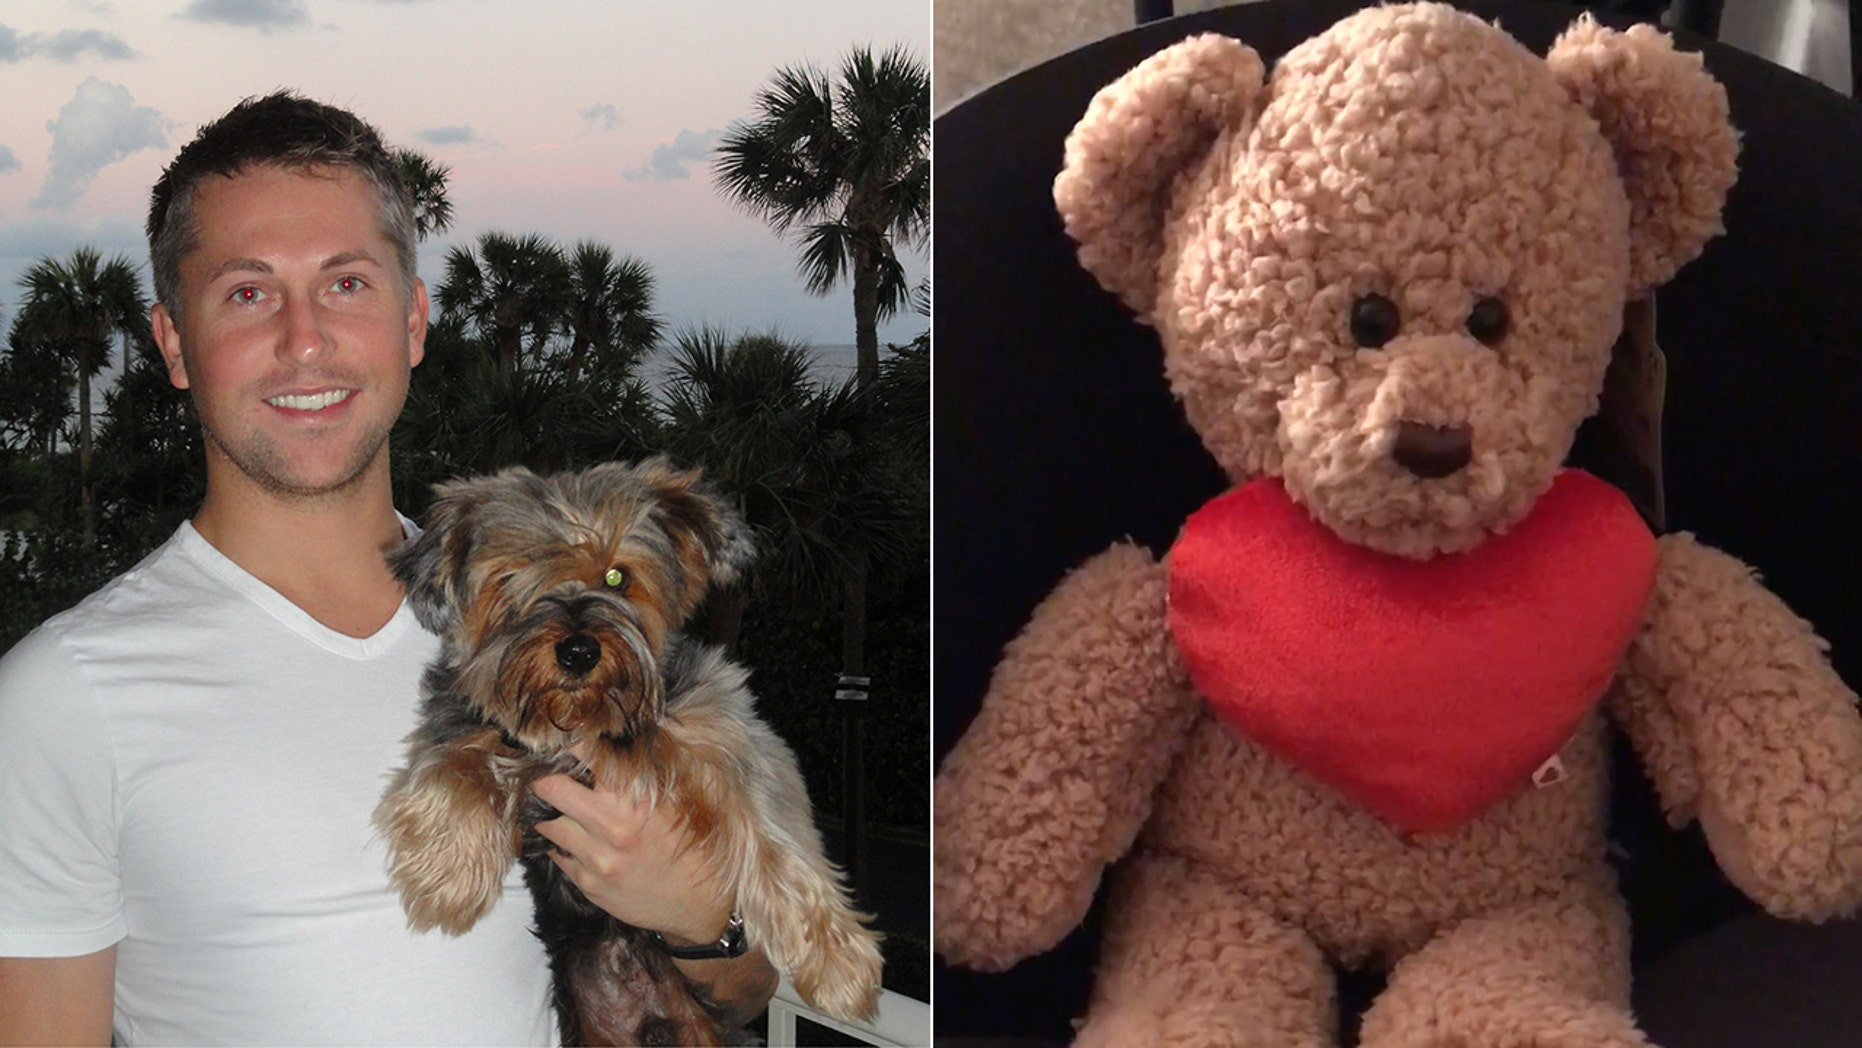 Sandor Szabo's heart saved a father of two last year, who recorded his new heart beating and put it inside a special bear for the man's grieving mother.